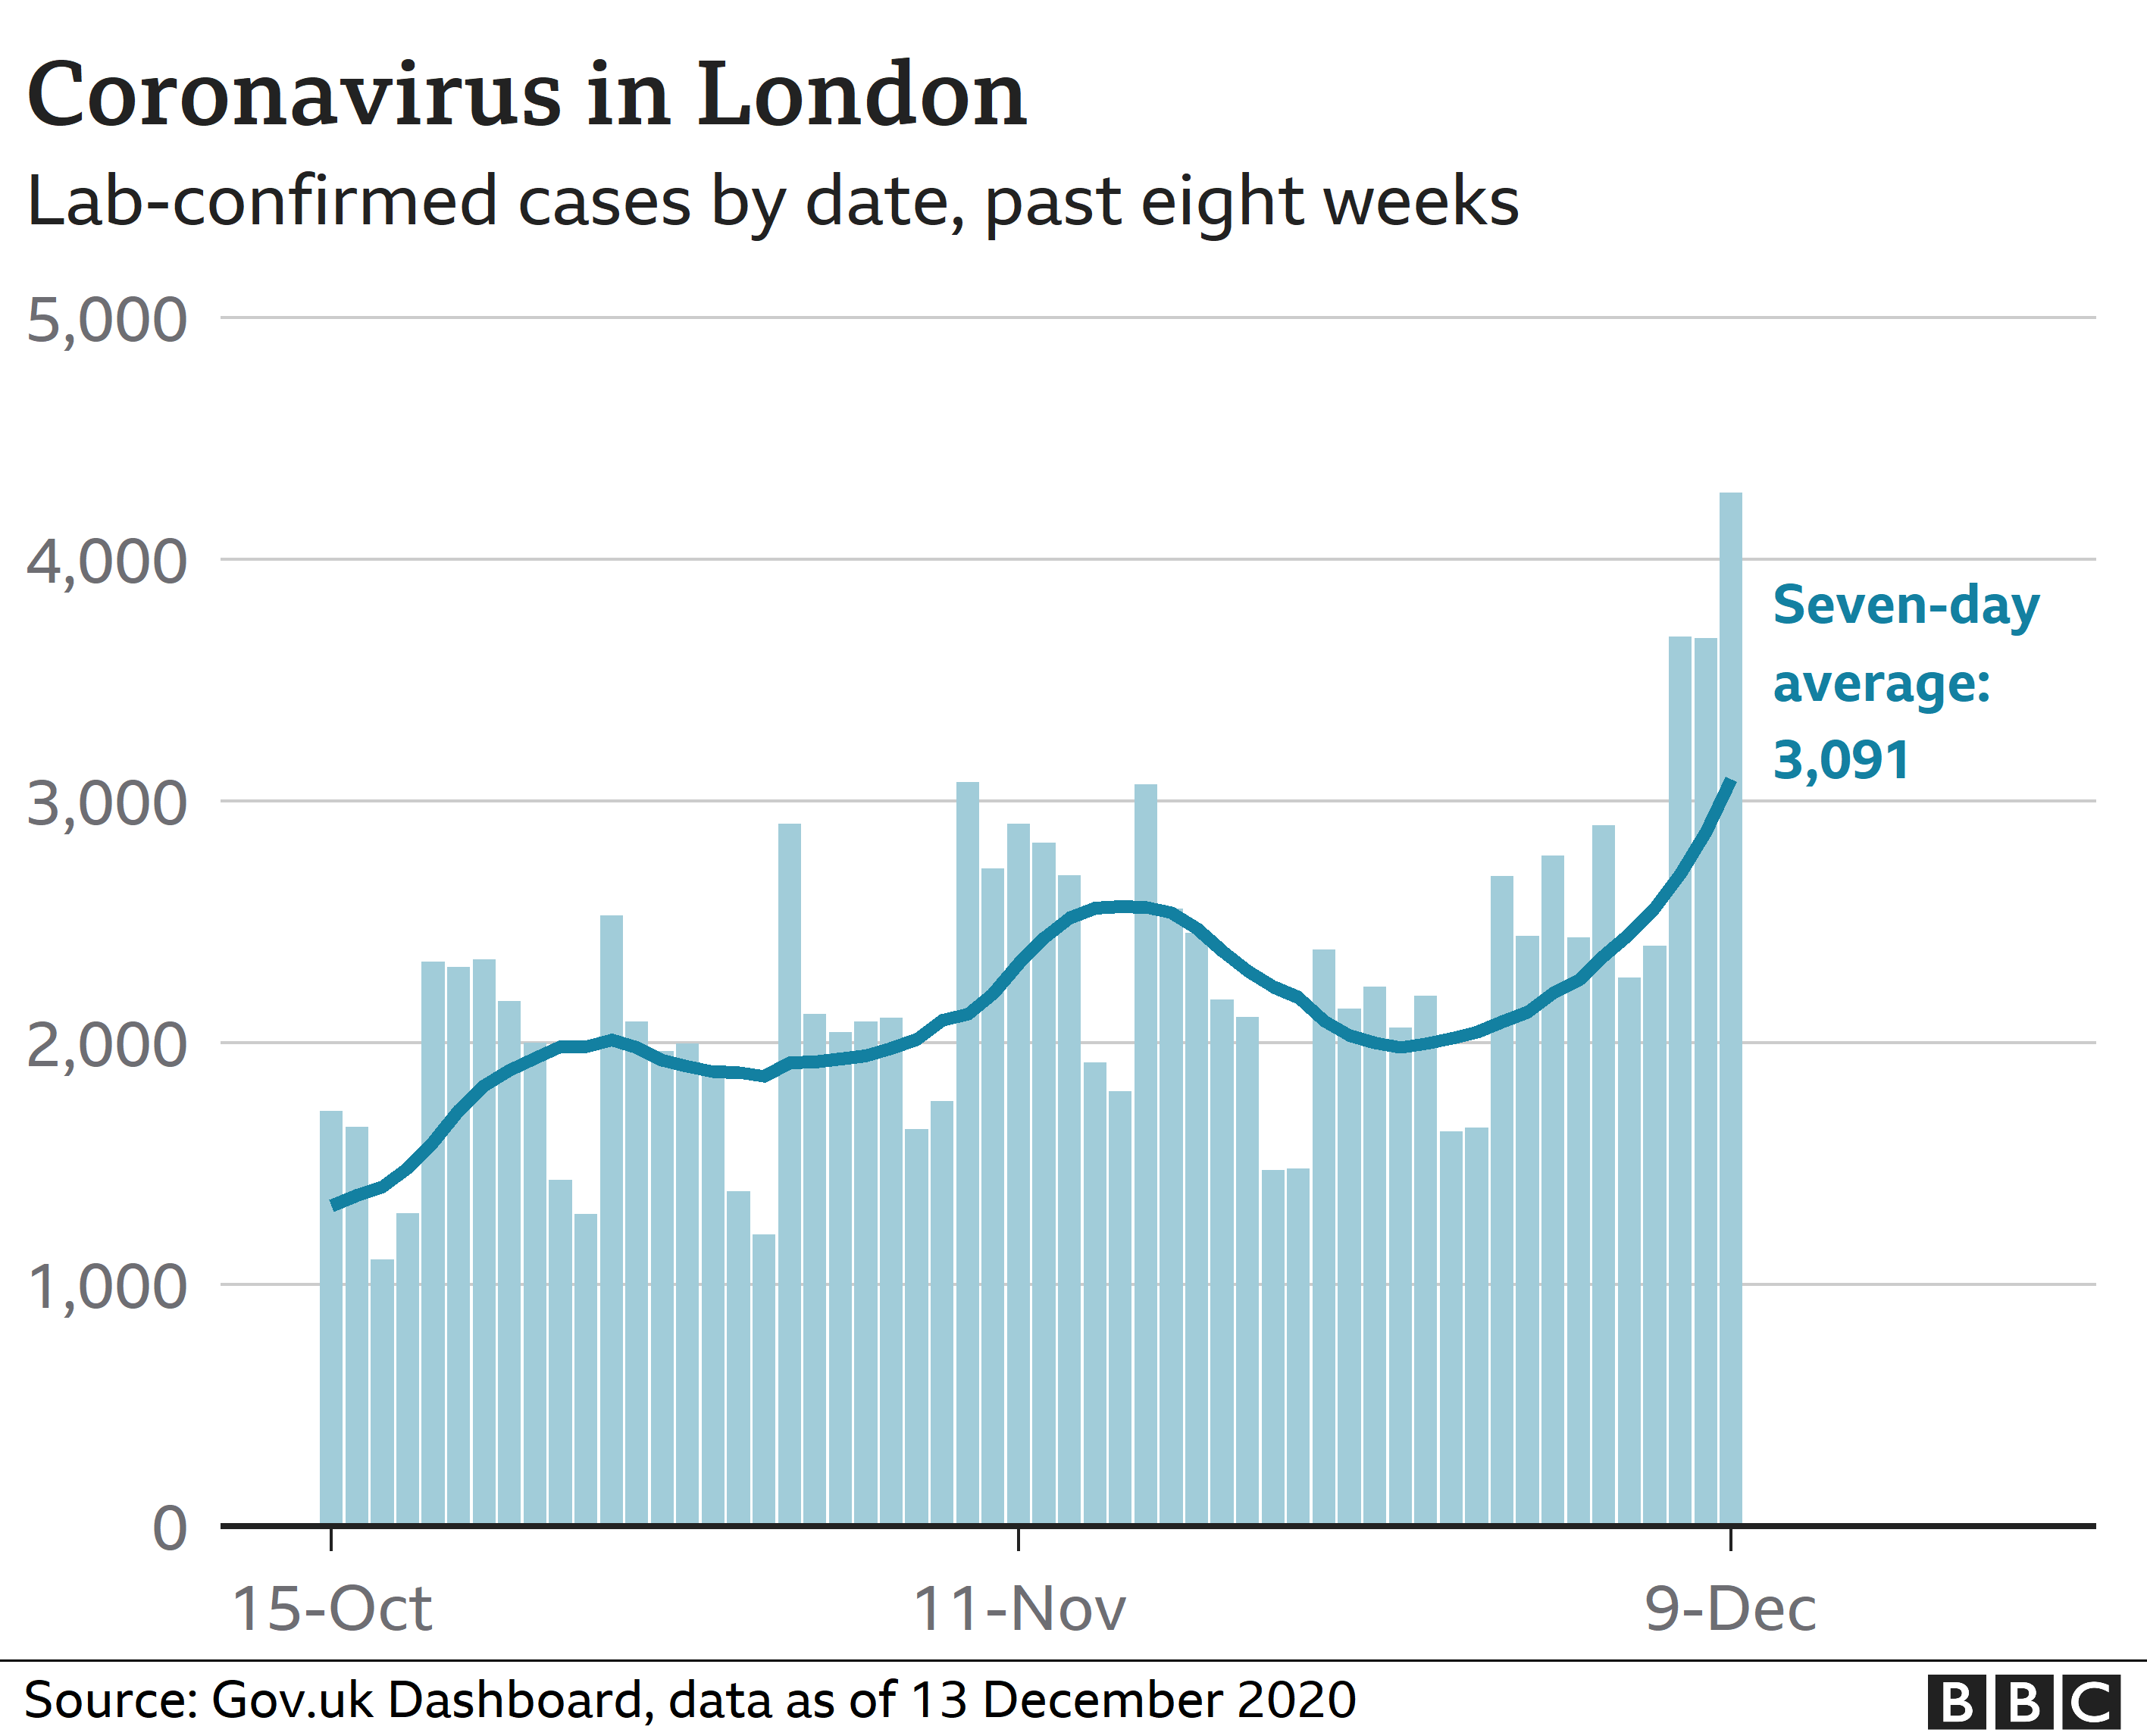 Coronavirus in London - statistics week ending 13 December 2020